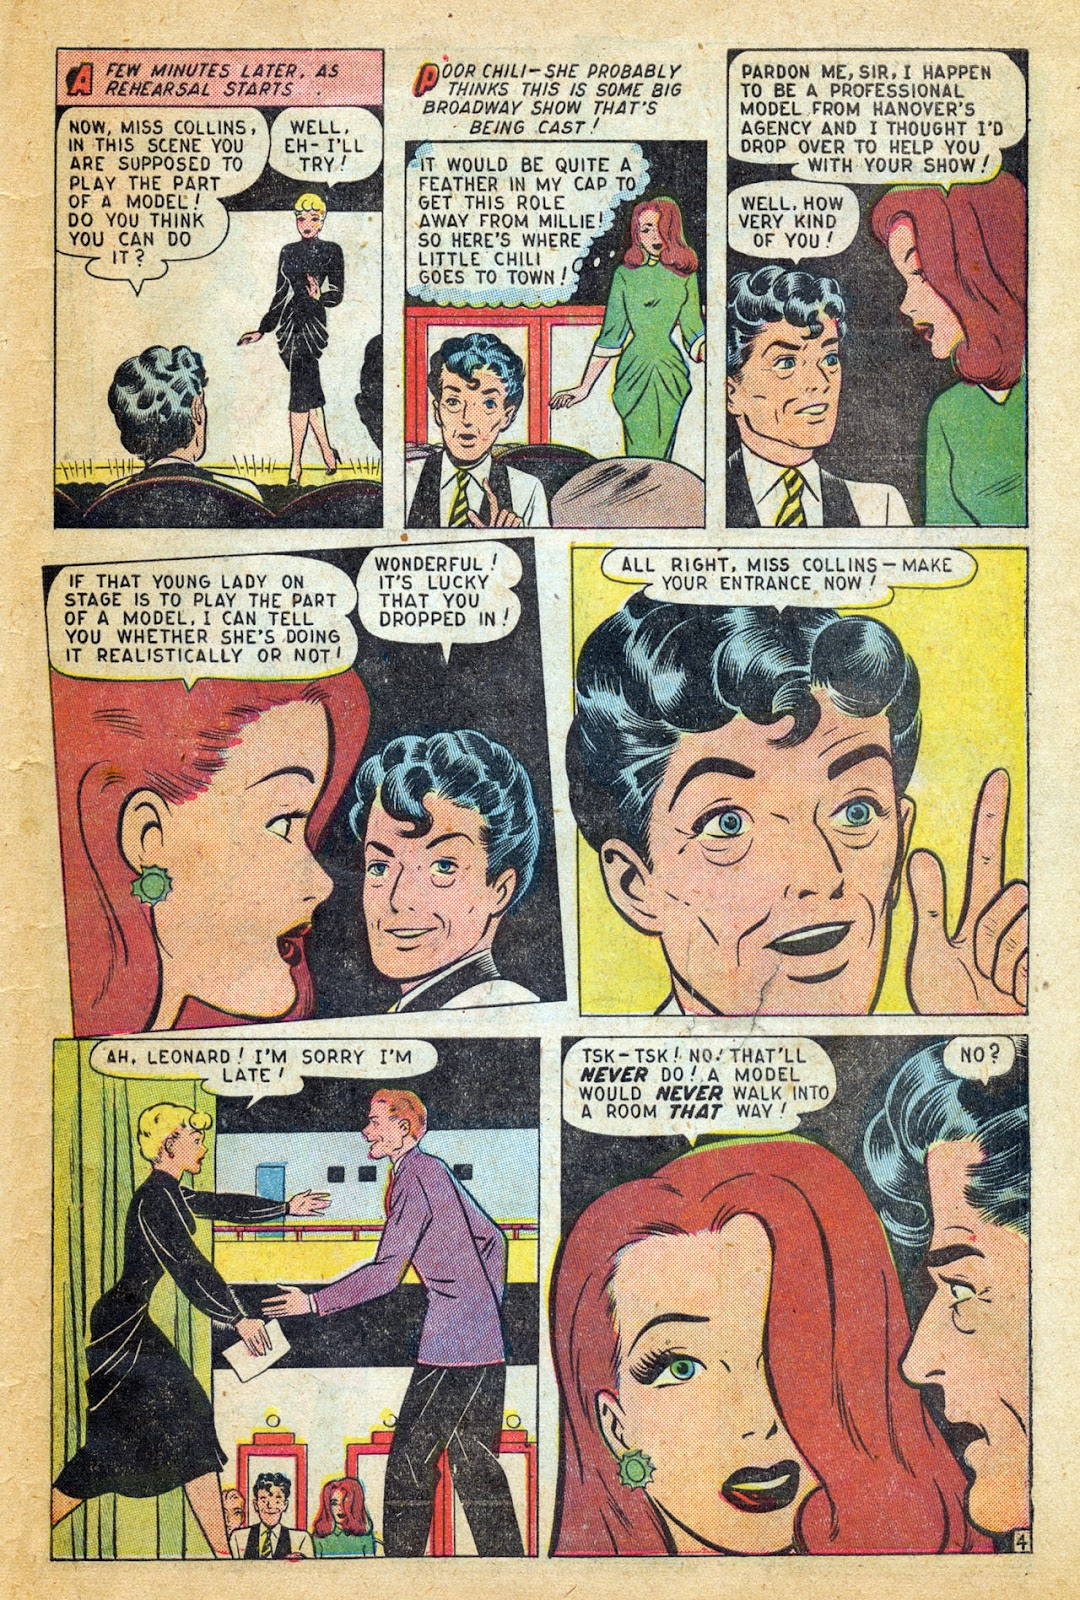 Read online Millie the Model comic -  Issue #14 - 45